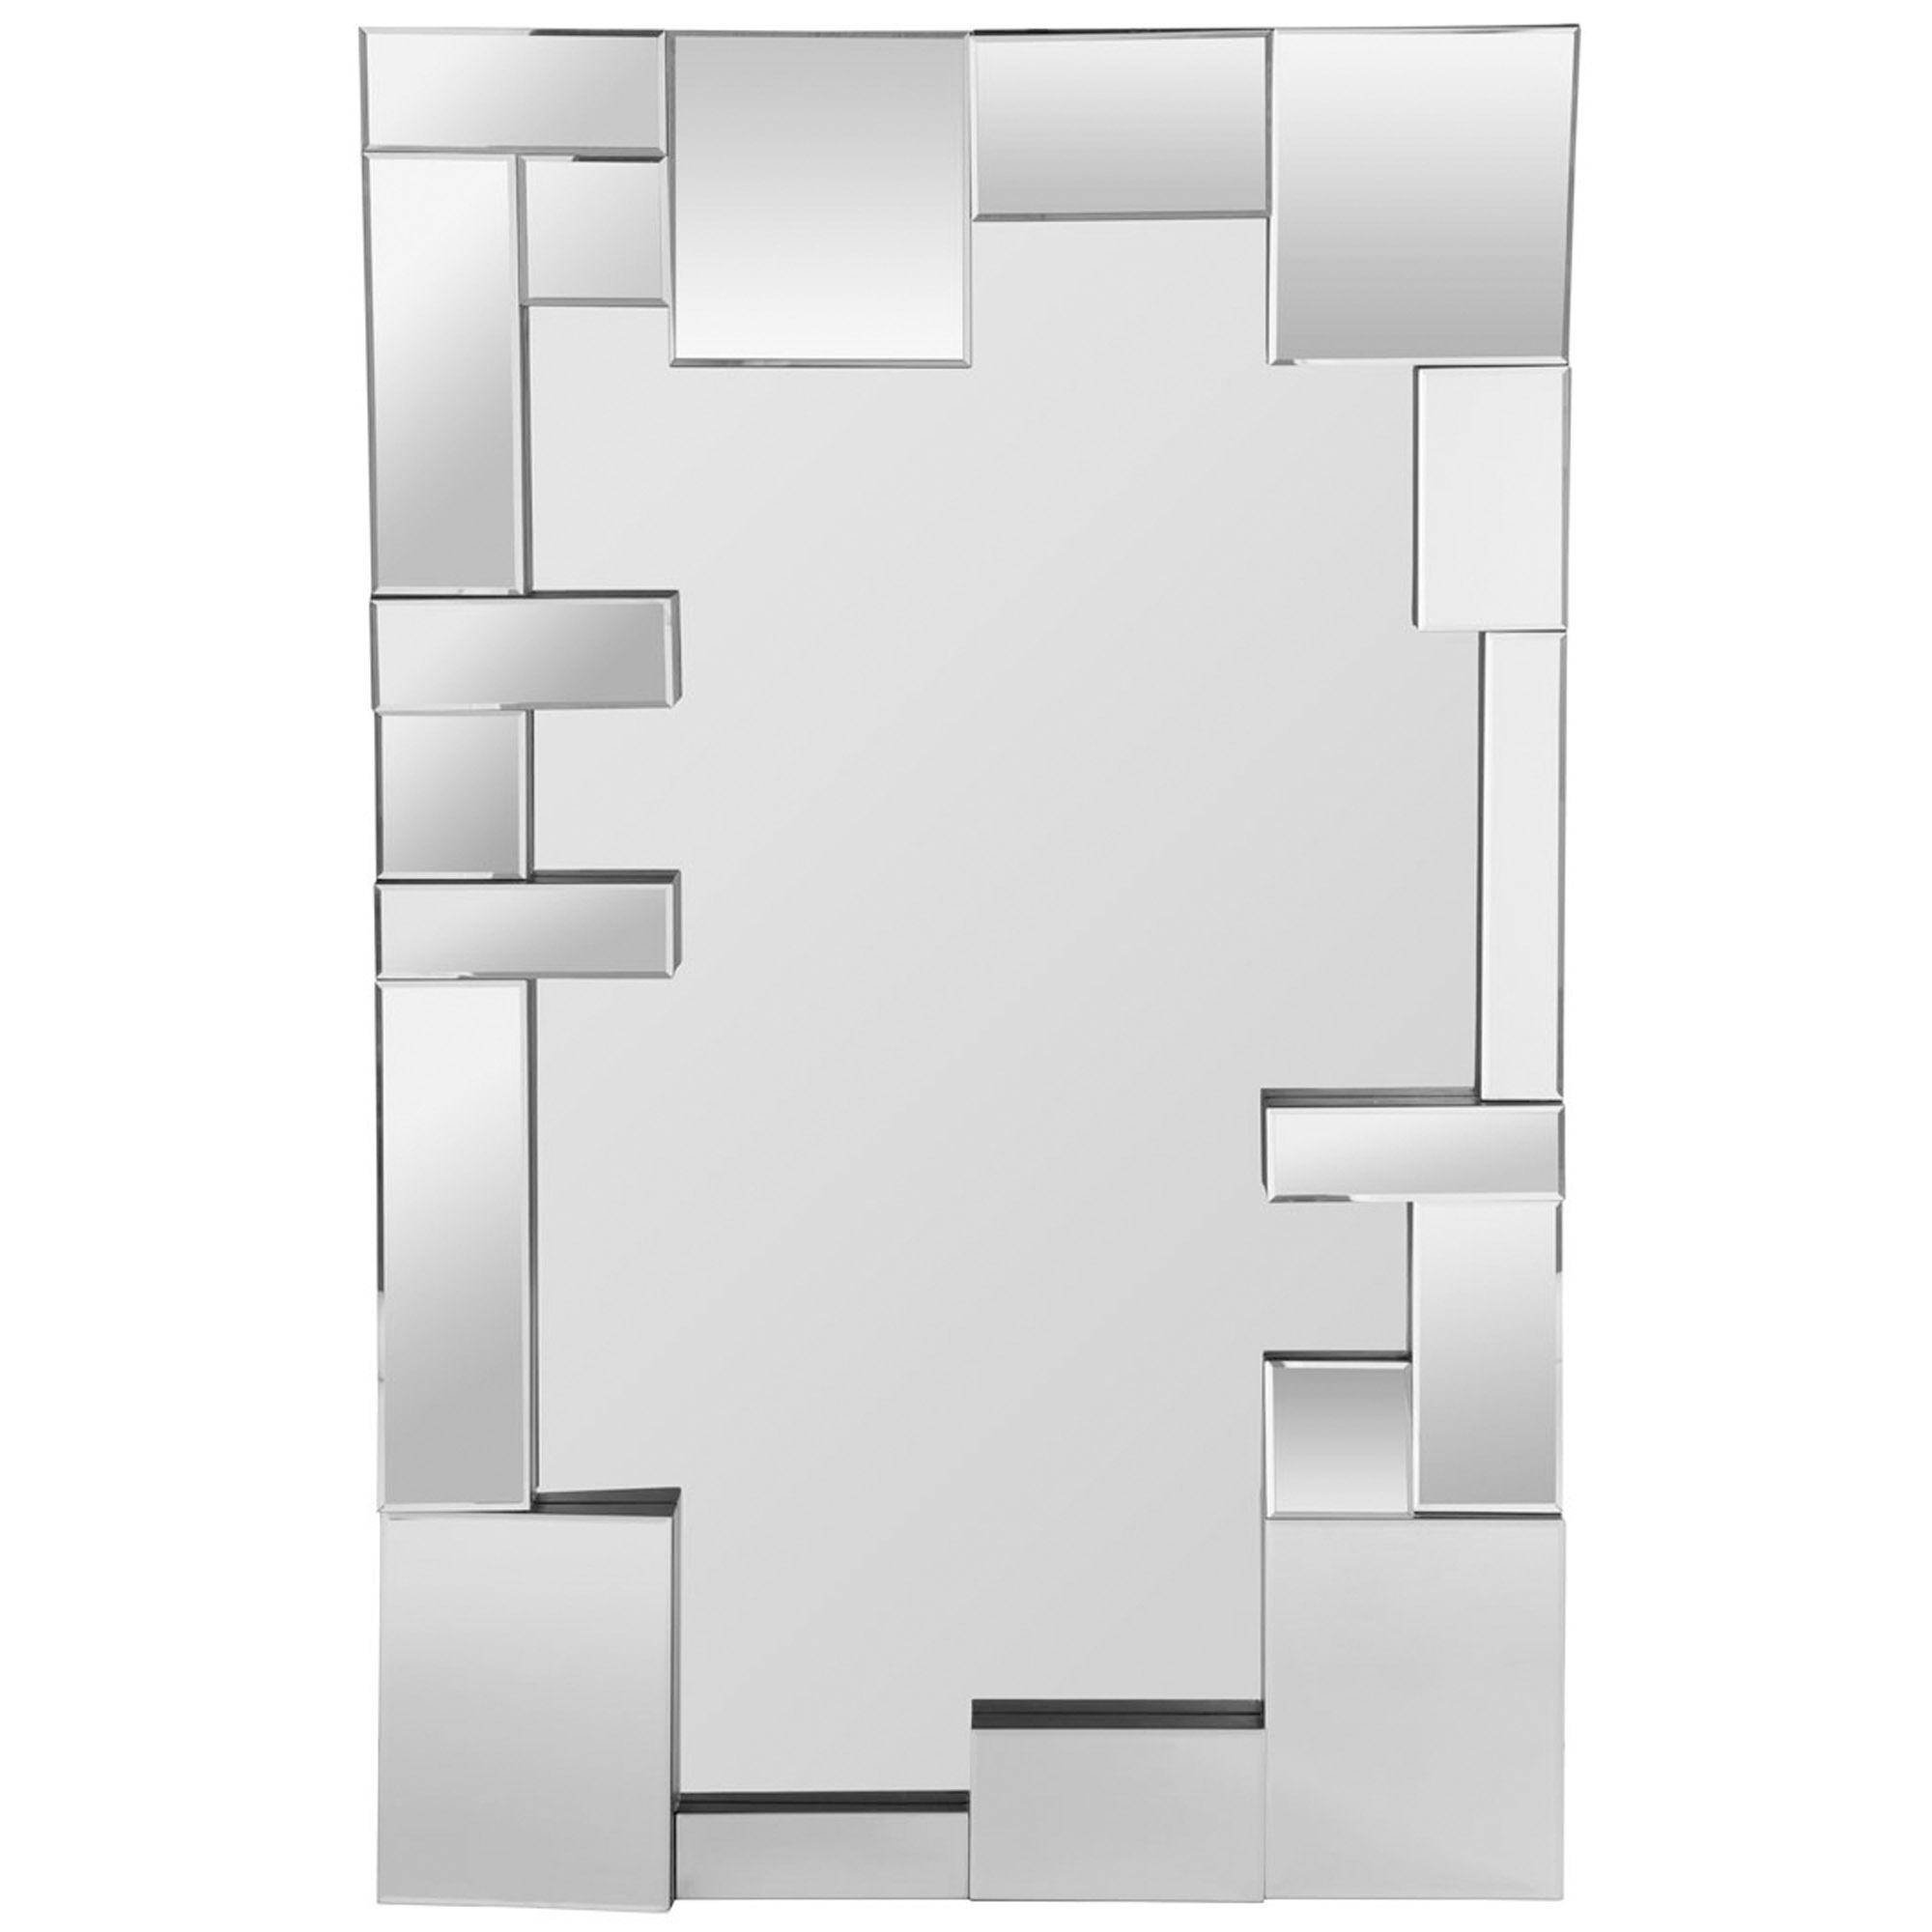 Large Abstract Wall Mirror Regarding Famous Modern Large Wall Mirrors (Gallery 3 of 20)